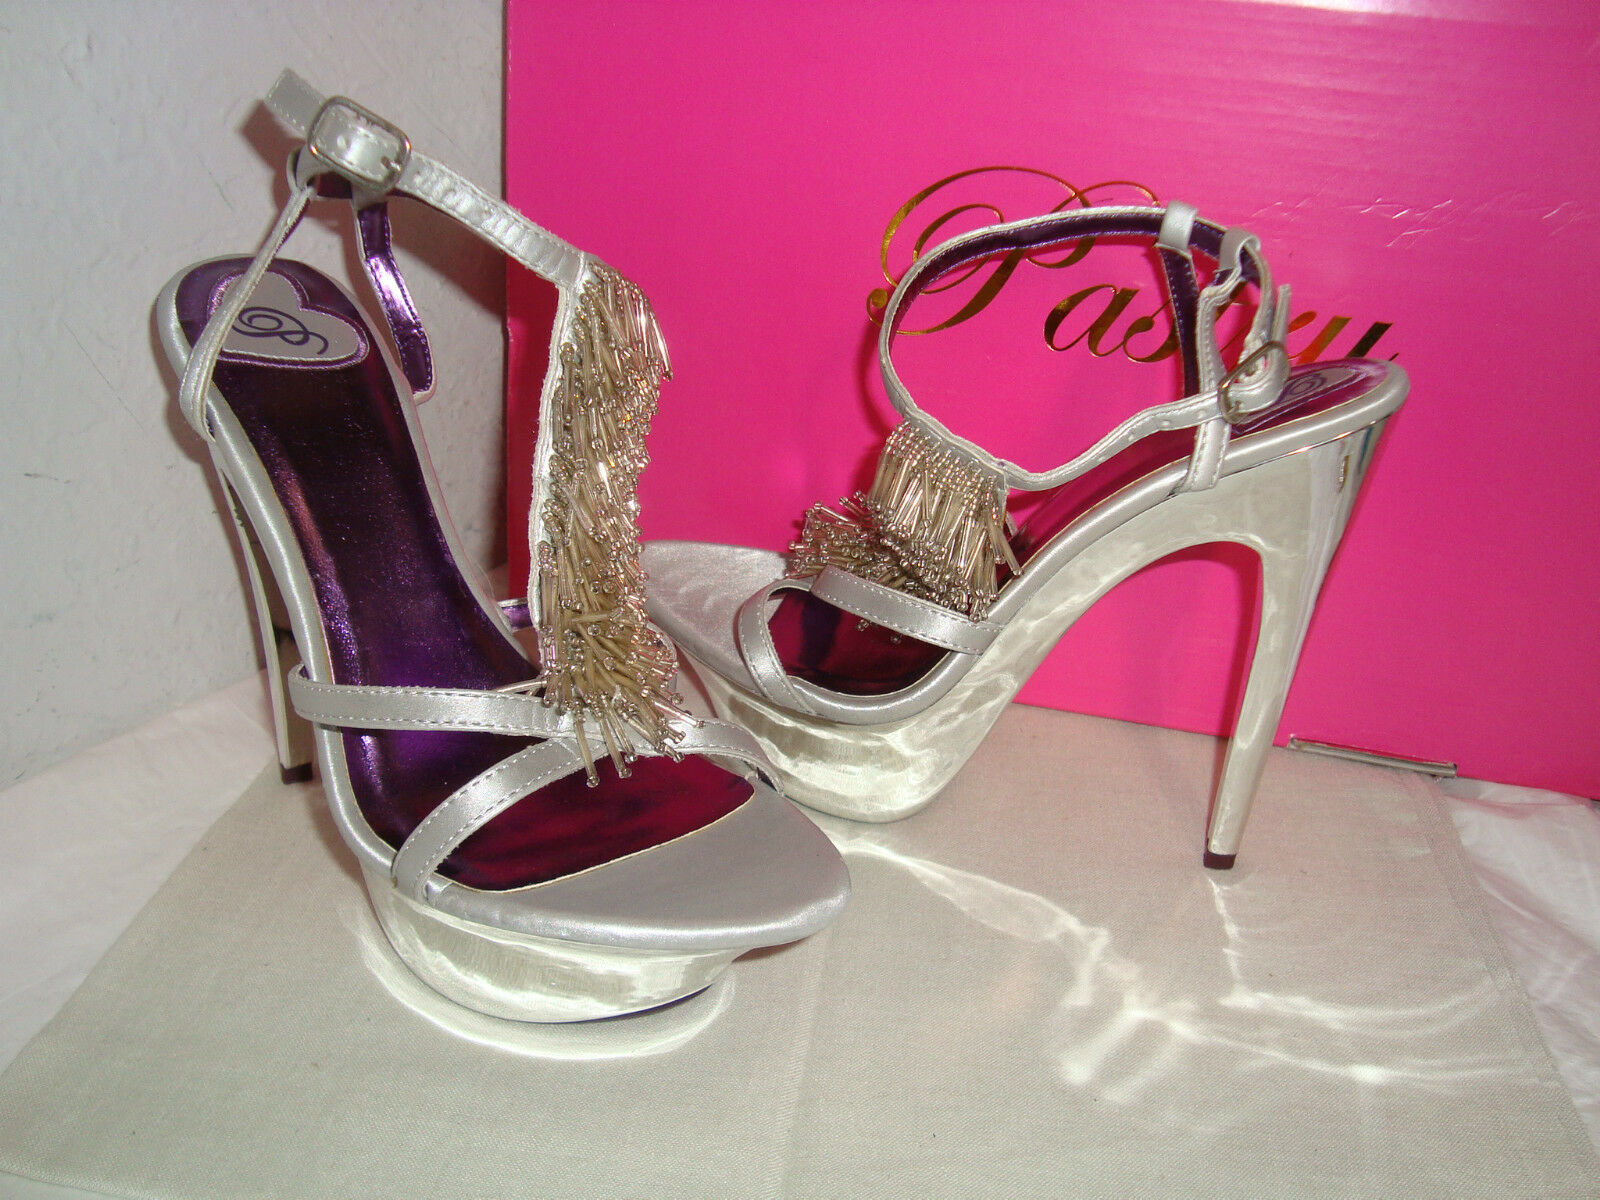 NEU Pastry Glam Night Silver Stilettos Heels 6.5 Medium